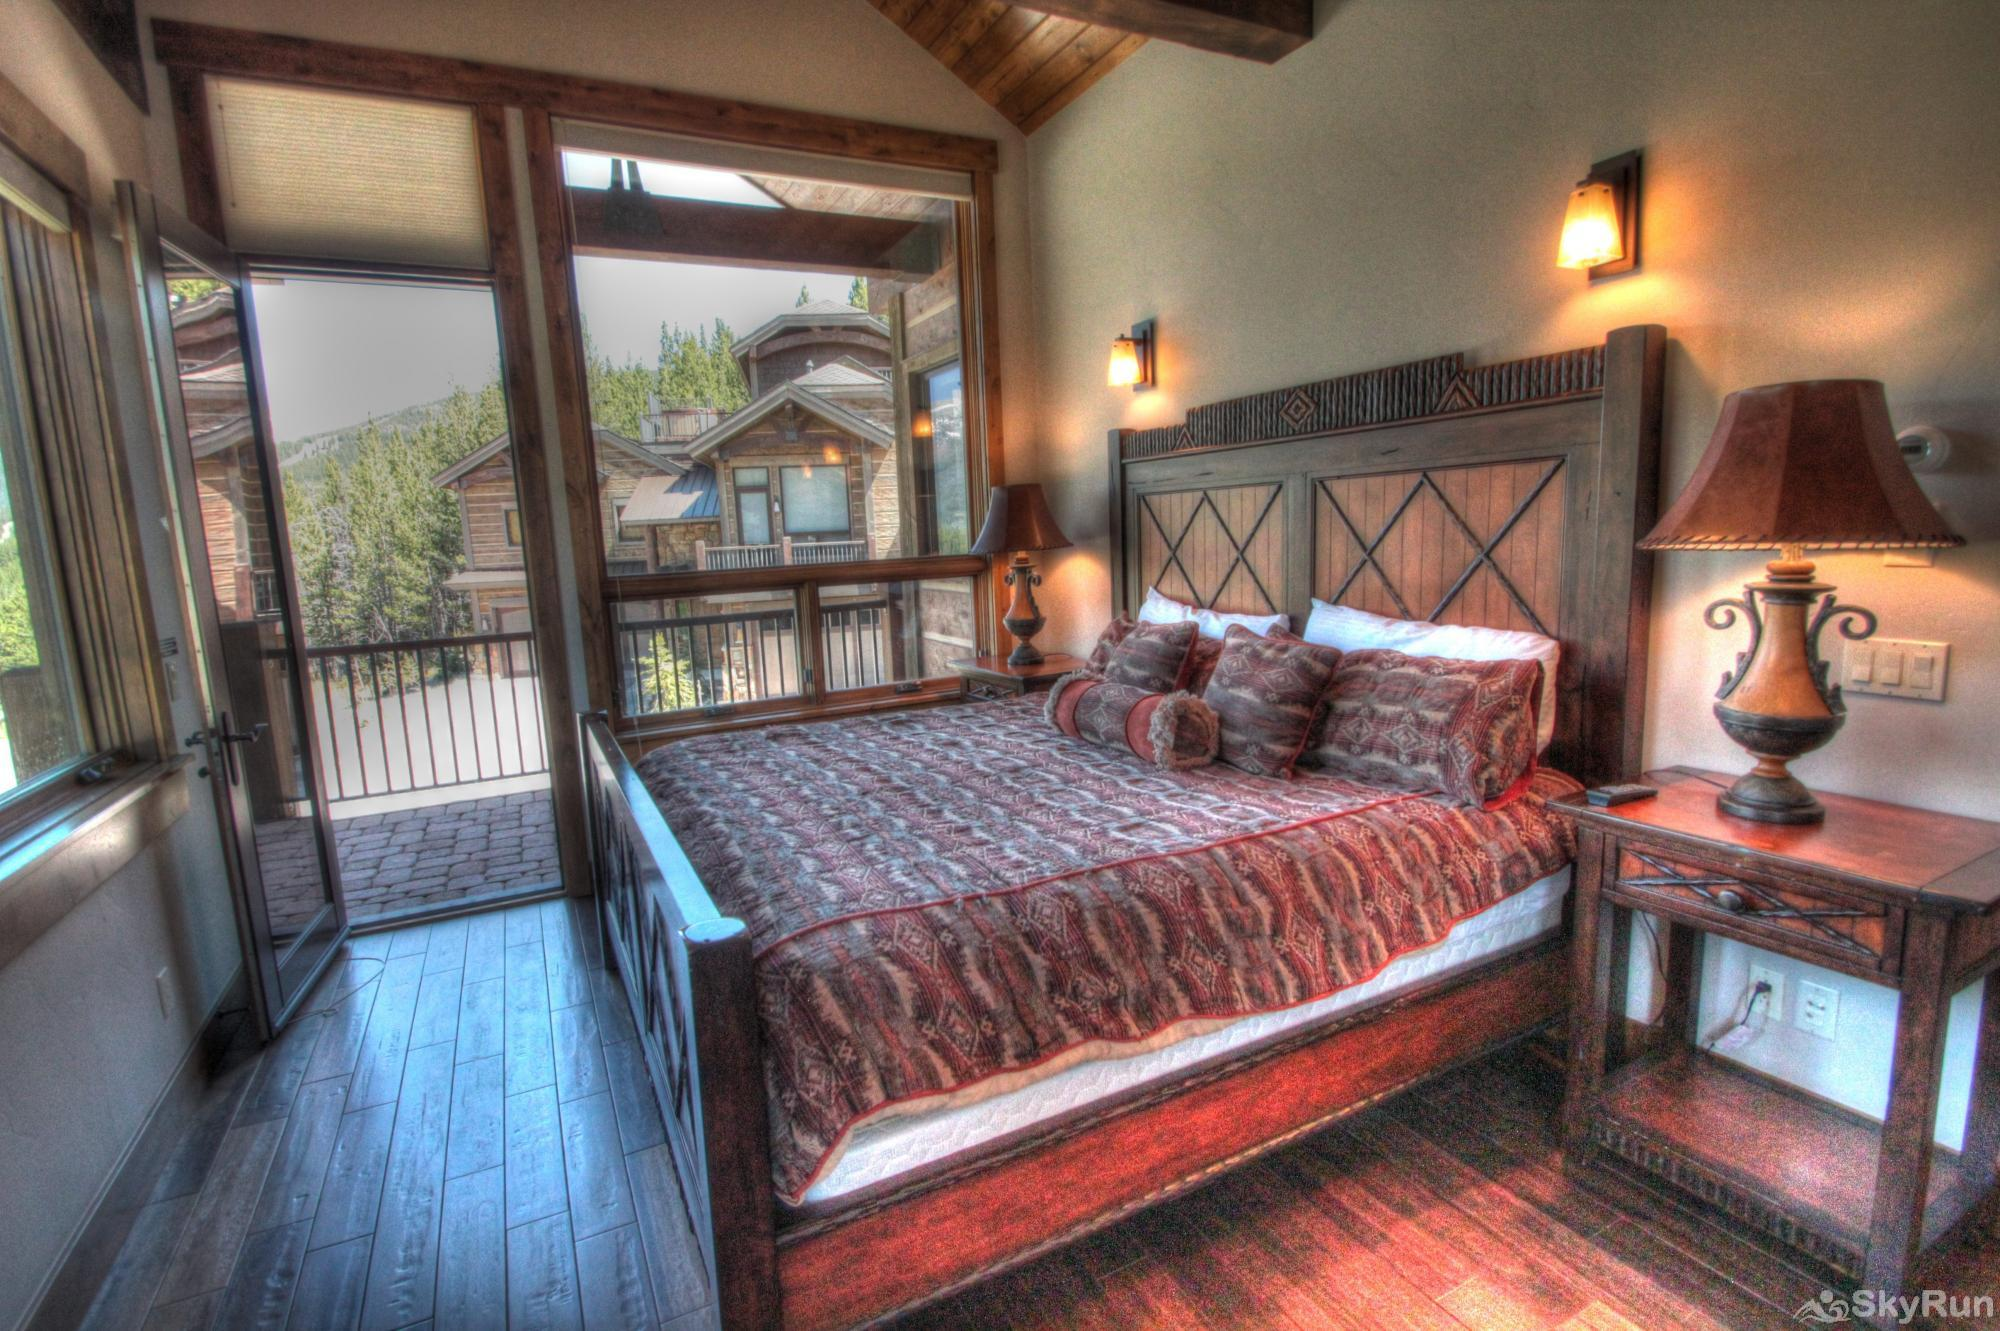 LR900 Mont Blanc in Lewis Ranch Master Bedroom